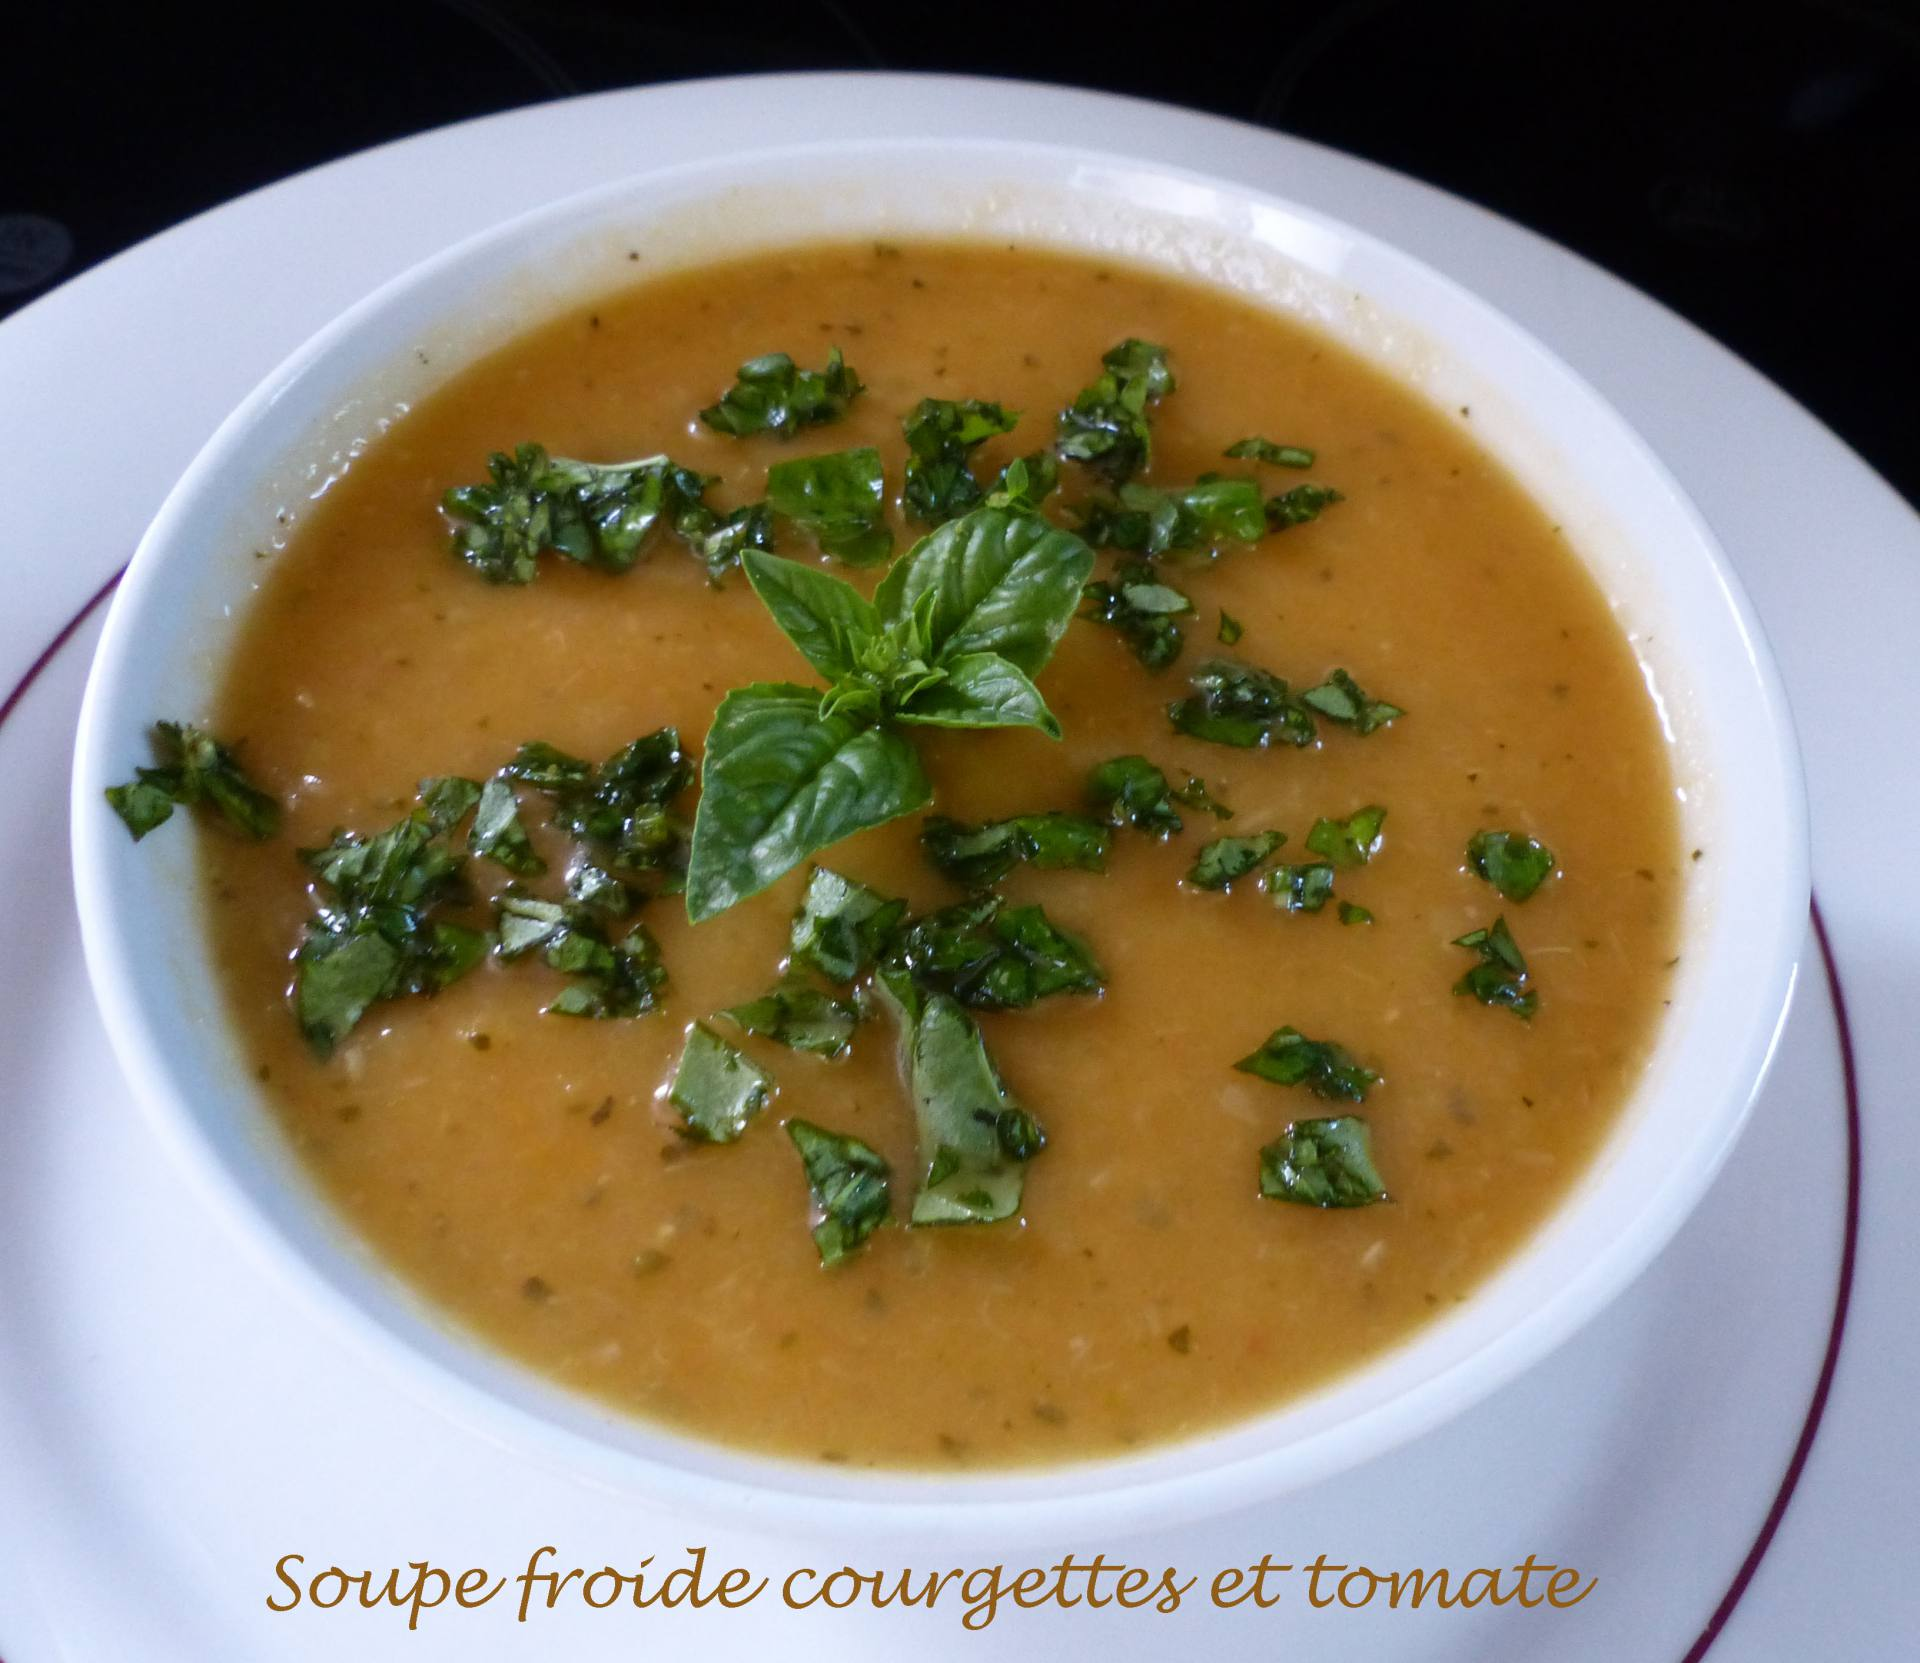 Soupe froide courgettes et tomate P1180589 R